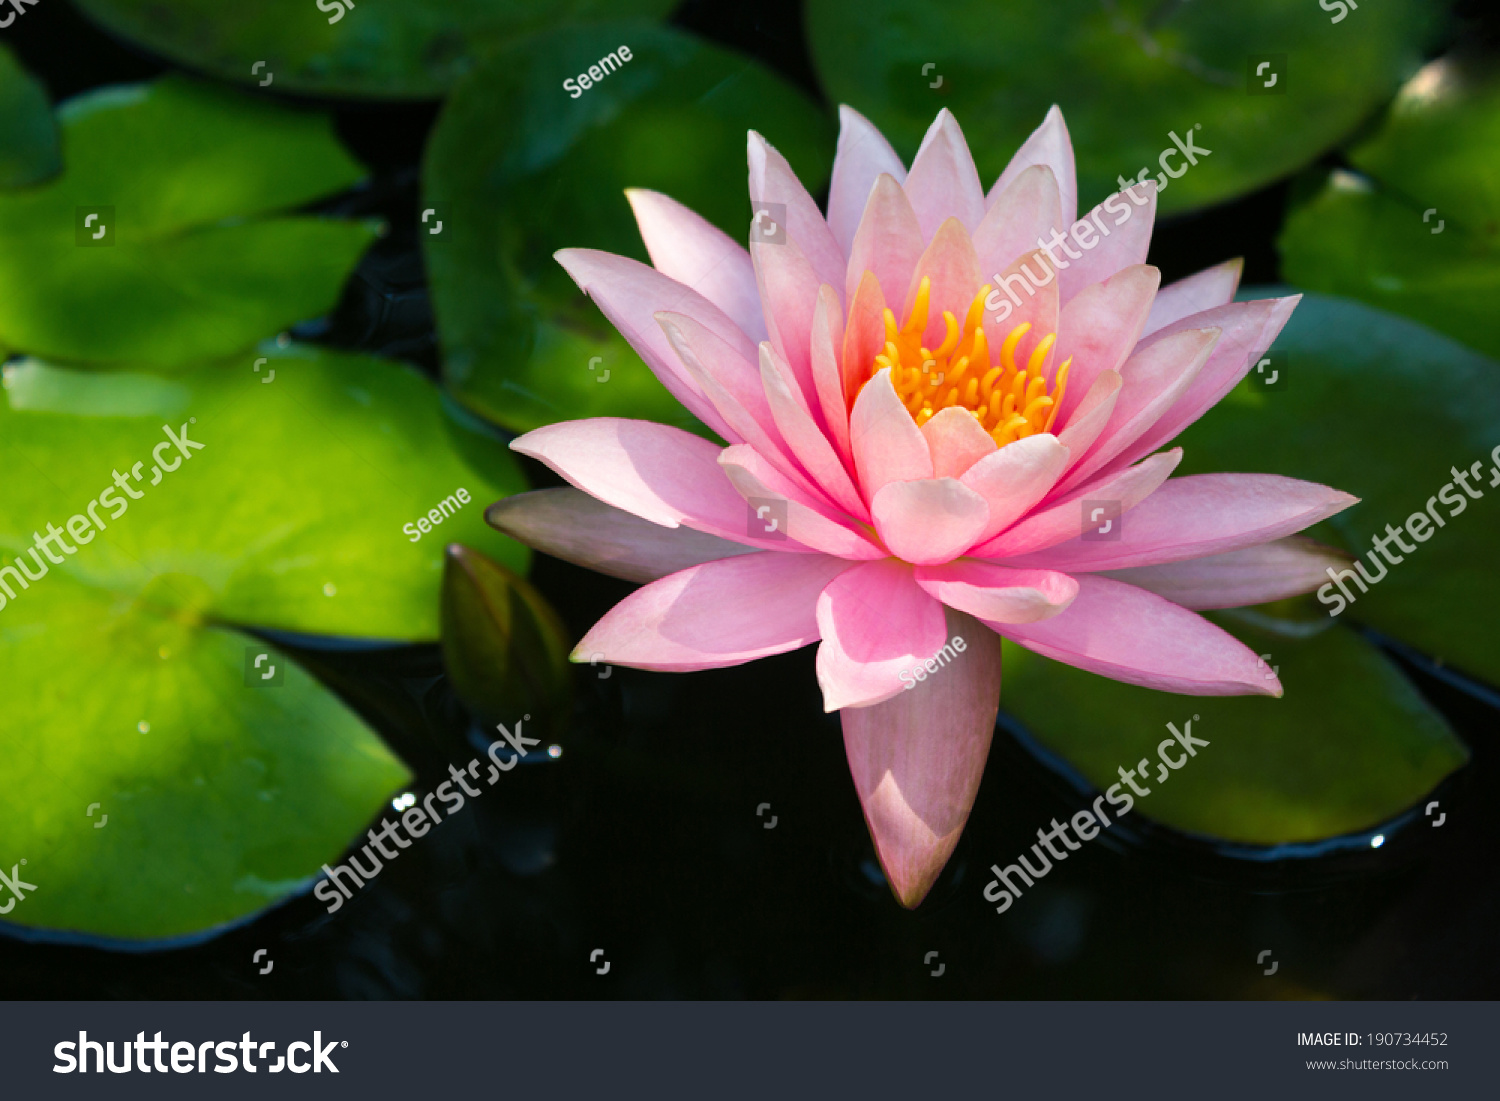 Pink Lotus Blossoms Or Water Lily Flowers Blooming On Pond Ez Canvas